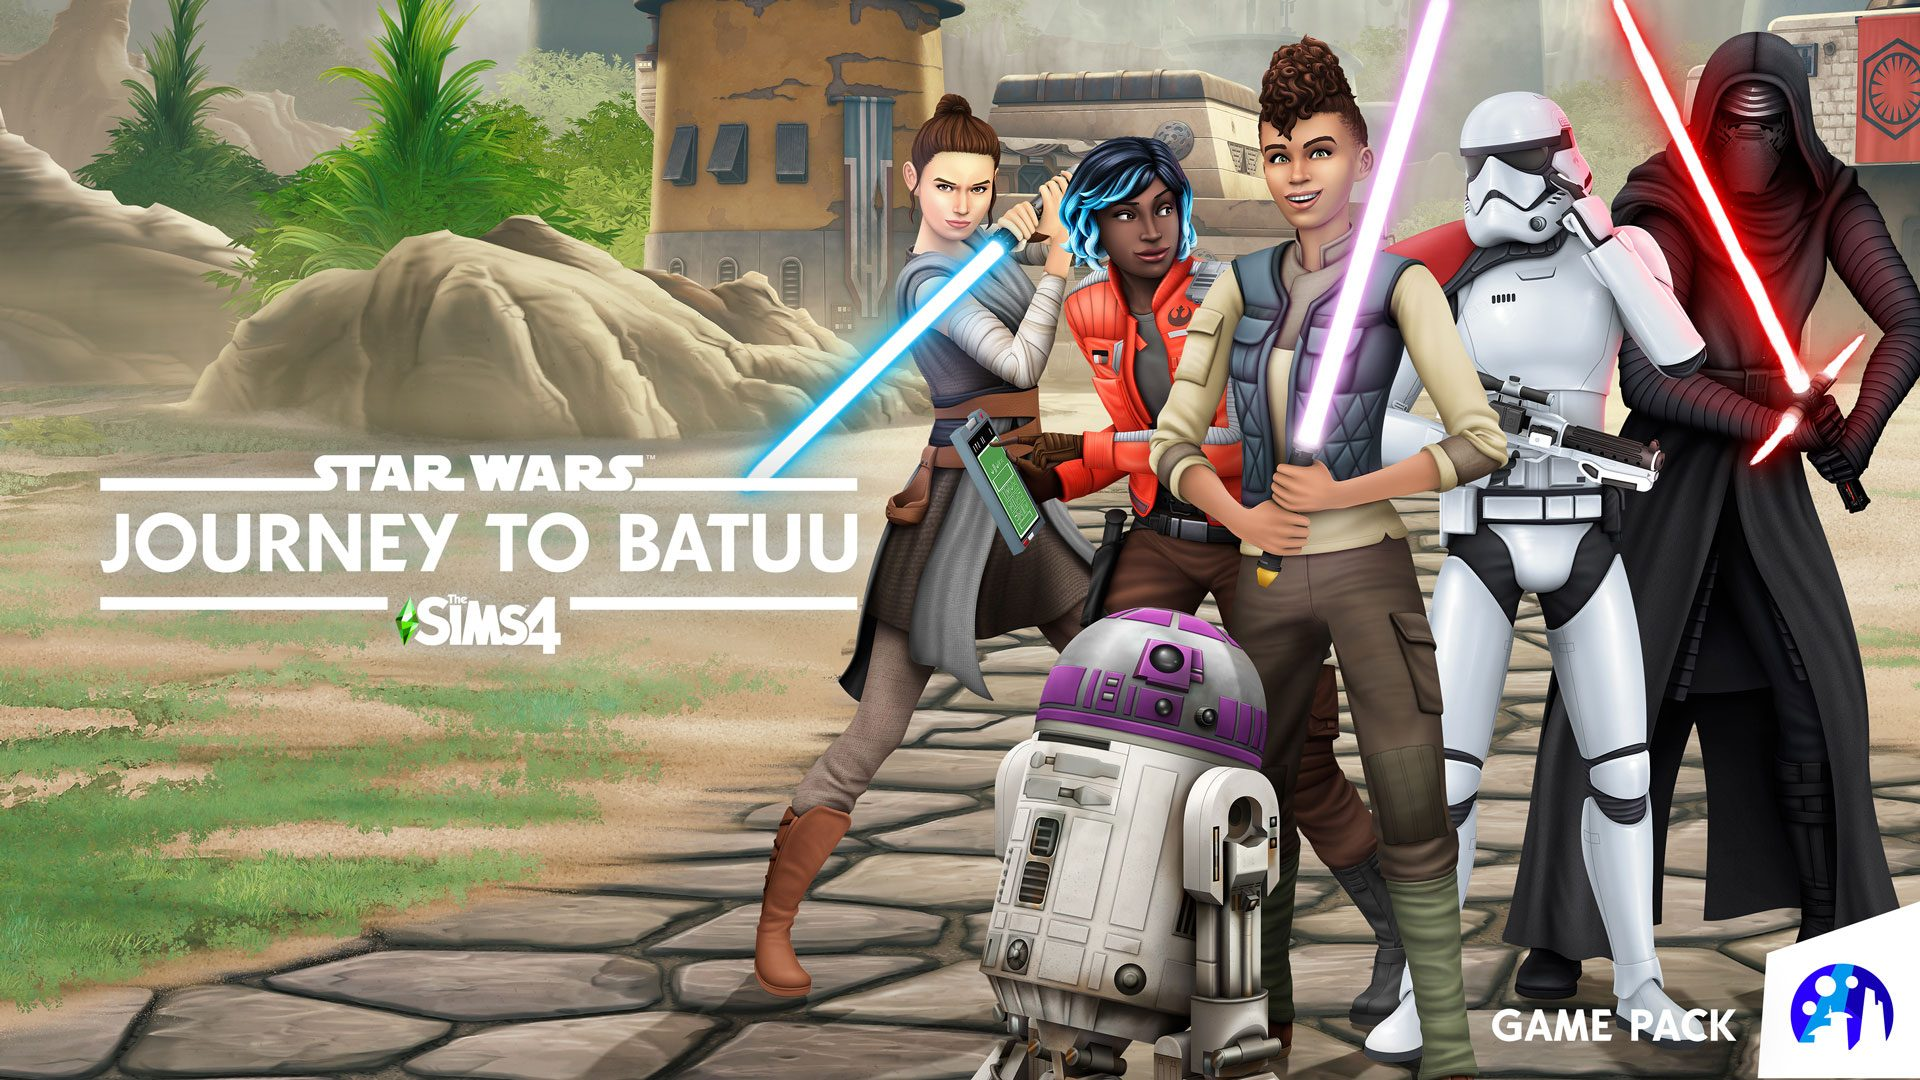 The Sims 4: Star Wars Journey to Batuu PC